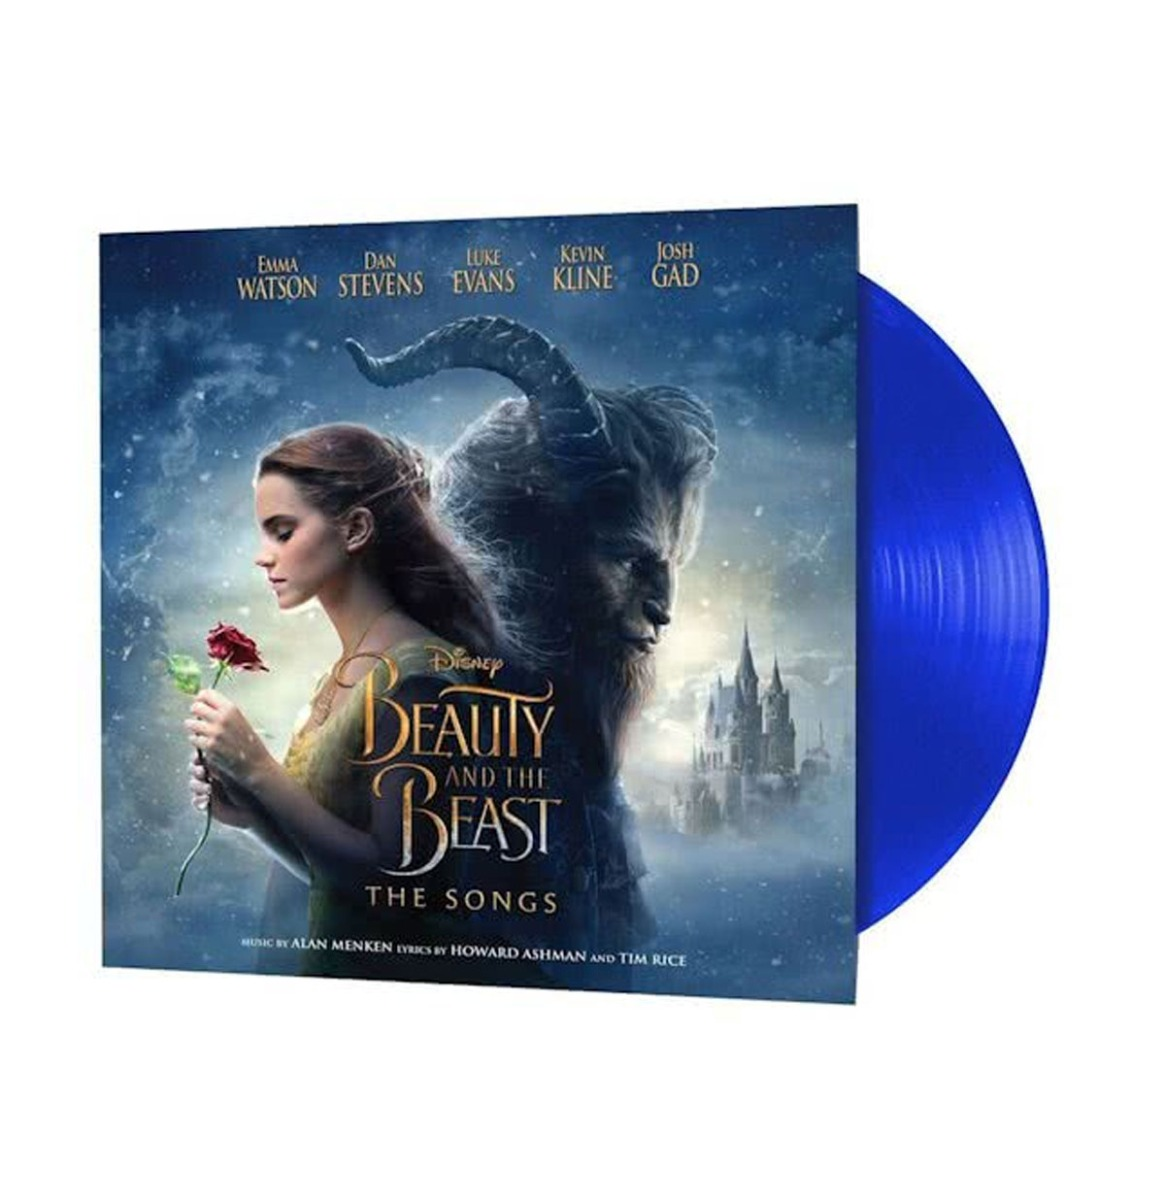 Beauty And The Beast The Songs LP